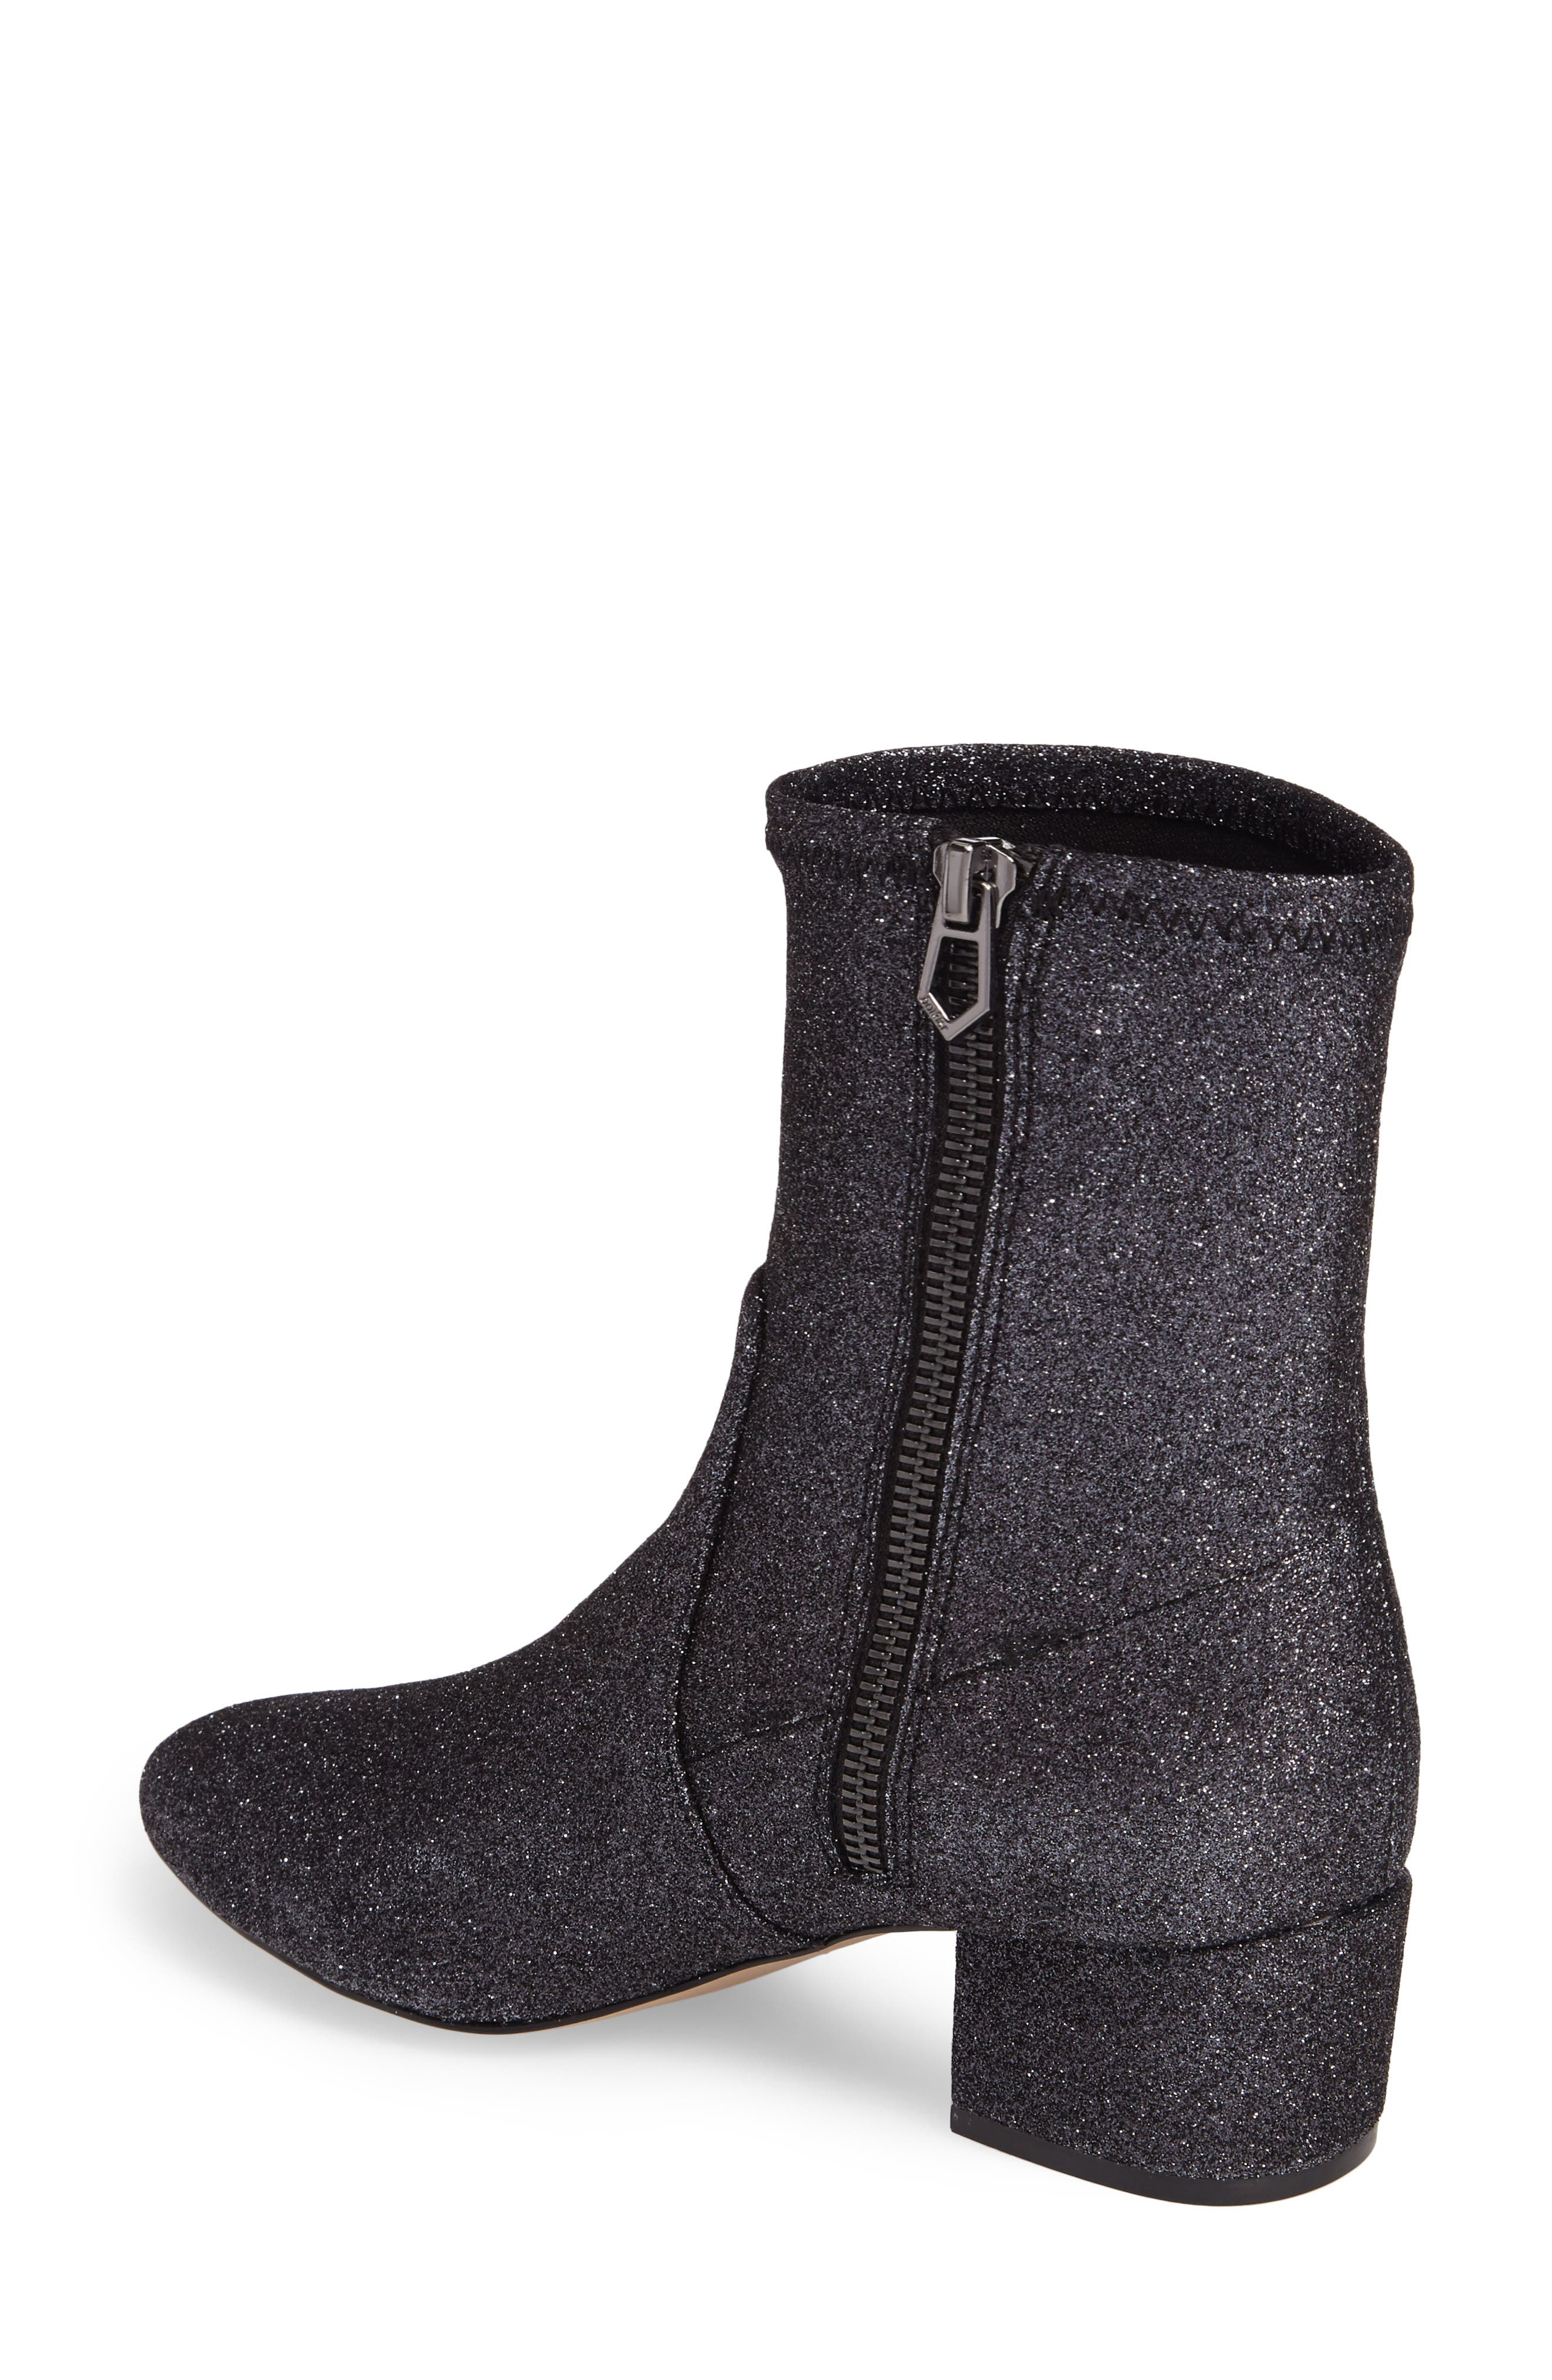 Gemma Bootie,                             Alternate thumbnail 2, color,                             Gunmetal Glitter